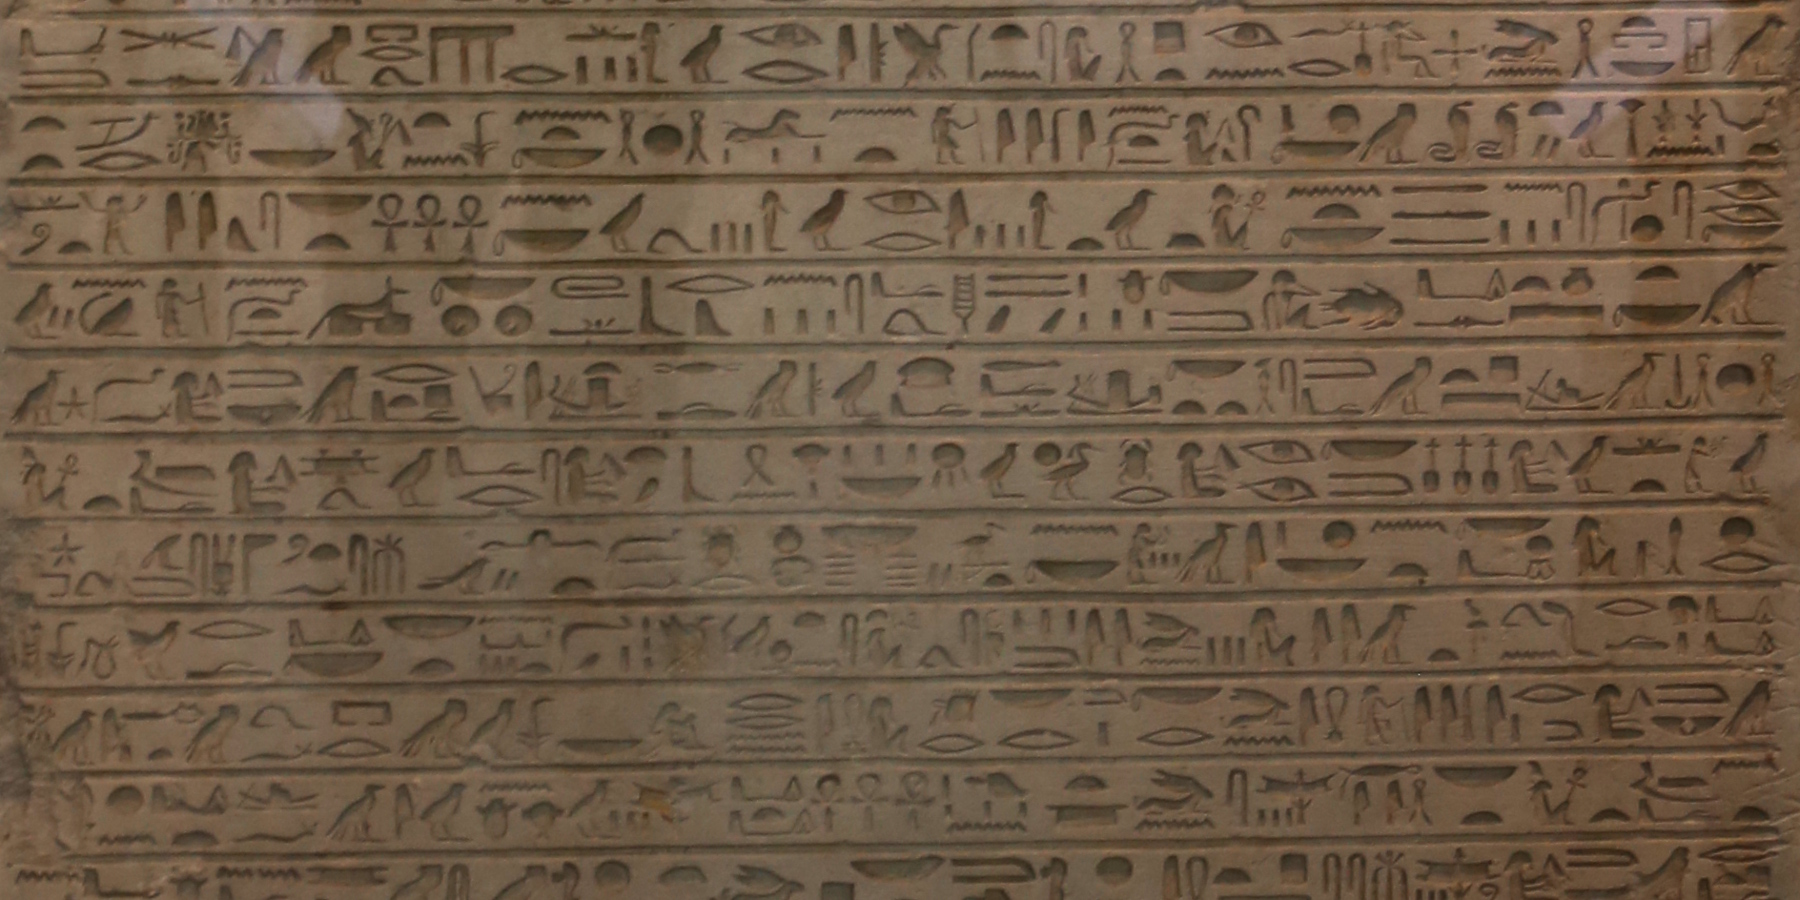 hieroglyphs in British Museum 2016